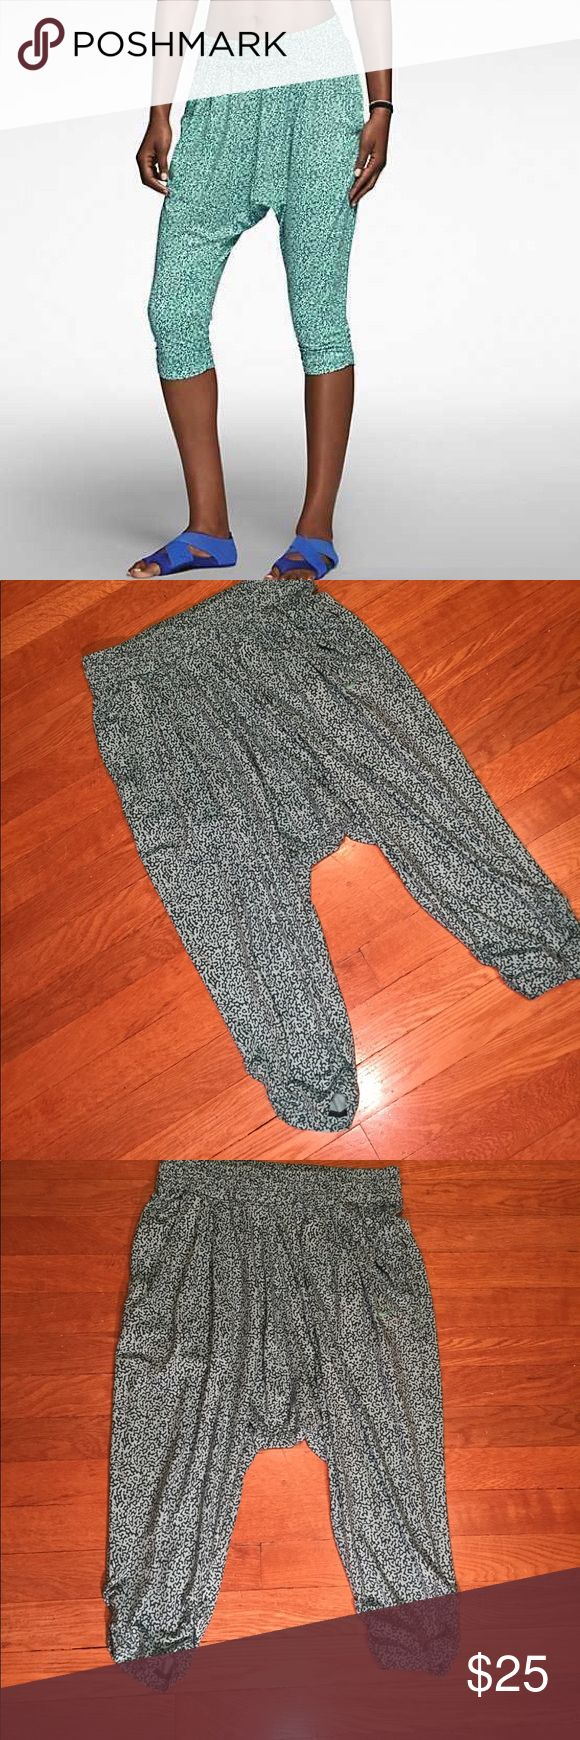 Nike avant move mezzo pattern training capris These are a pair of blue and mint patterned training capris from Nike, elastic waist band, front two pockets, cinched waist band. Good condition minor wear, small part of front stitching at waist band coming undone, see pictures.  Be sure and check out other items in closet and bundle to receive discounts. Nike Pants Track Pants & Joggers